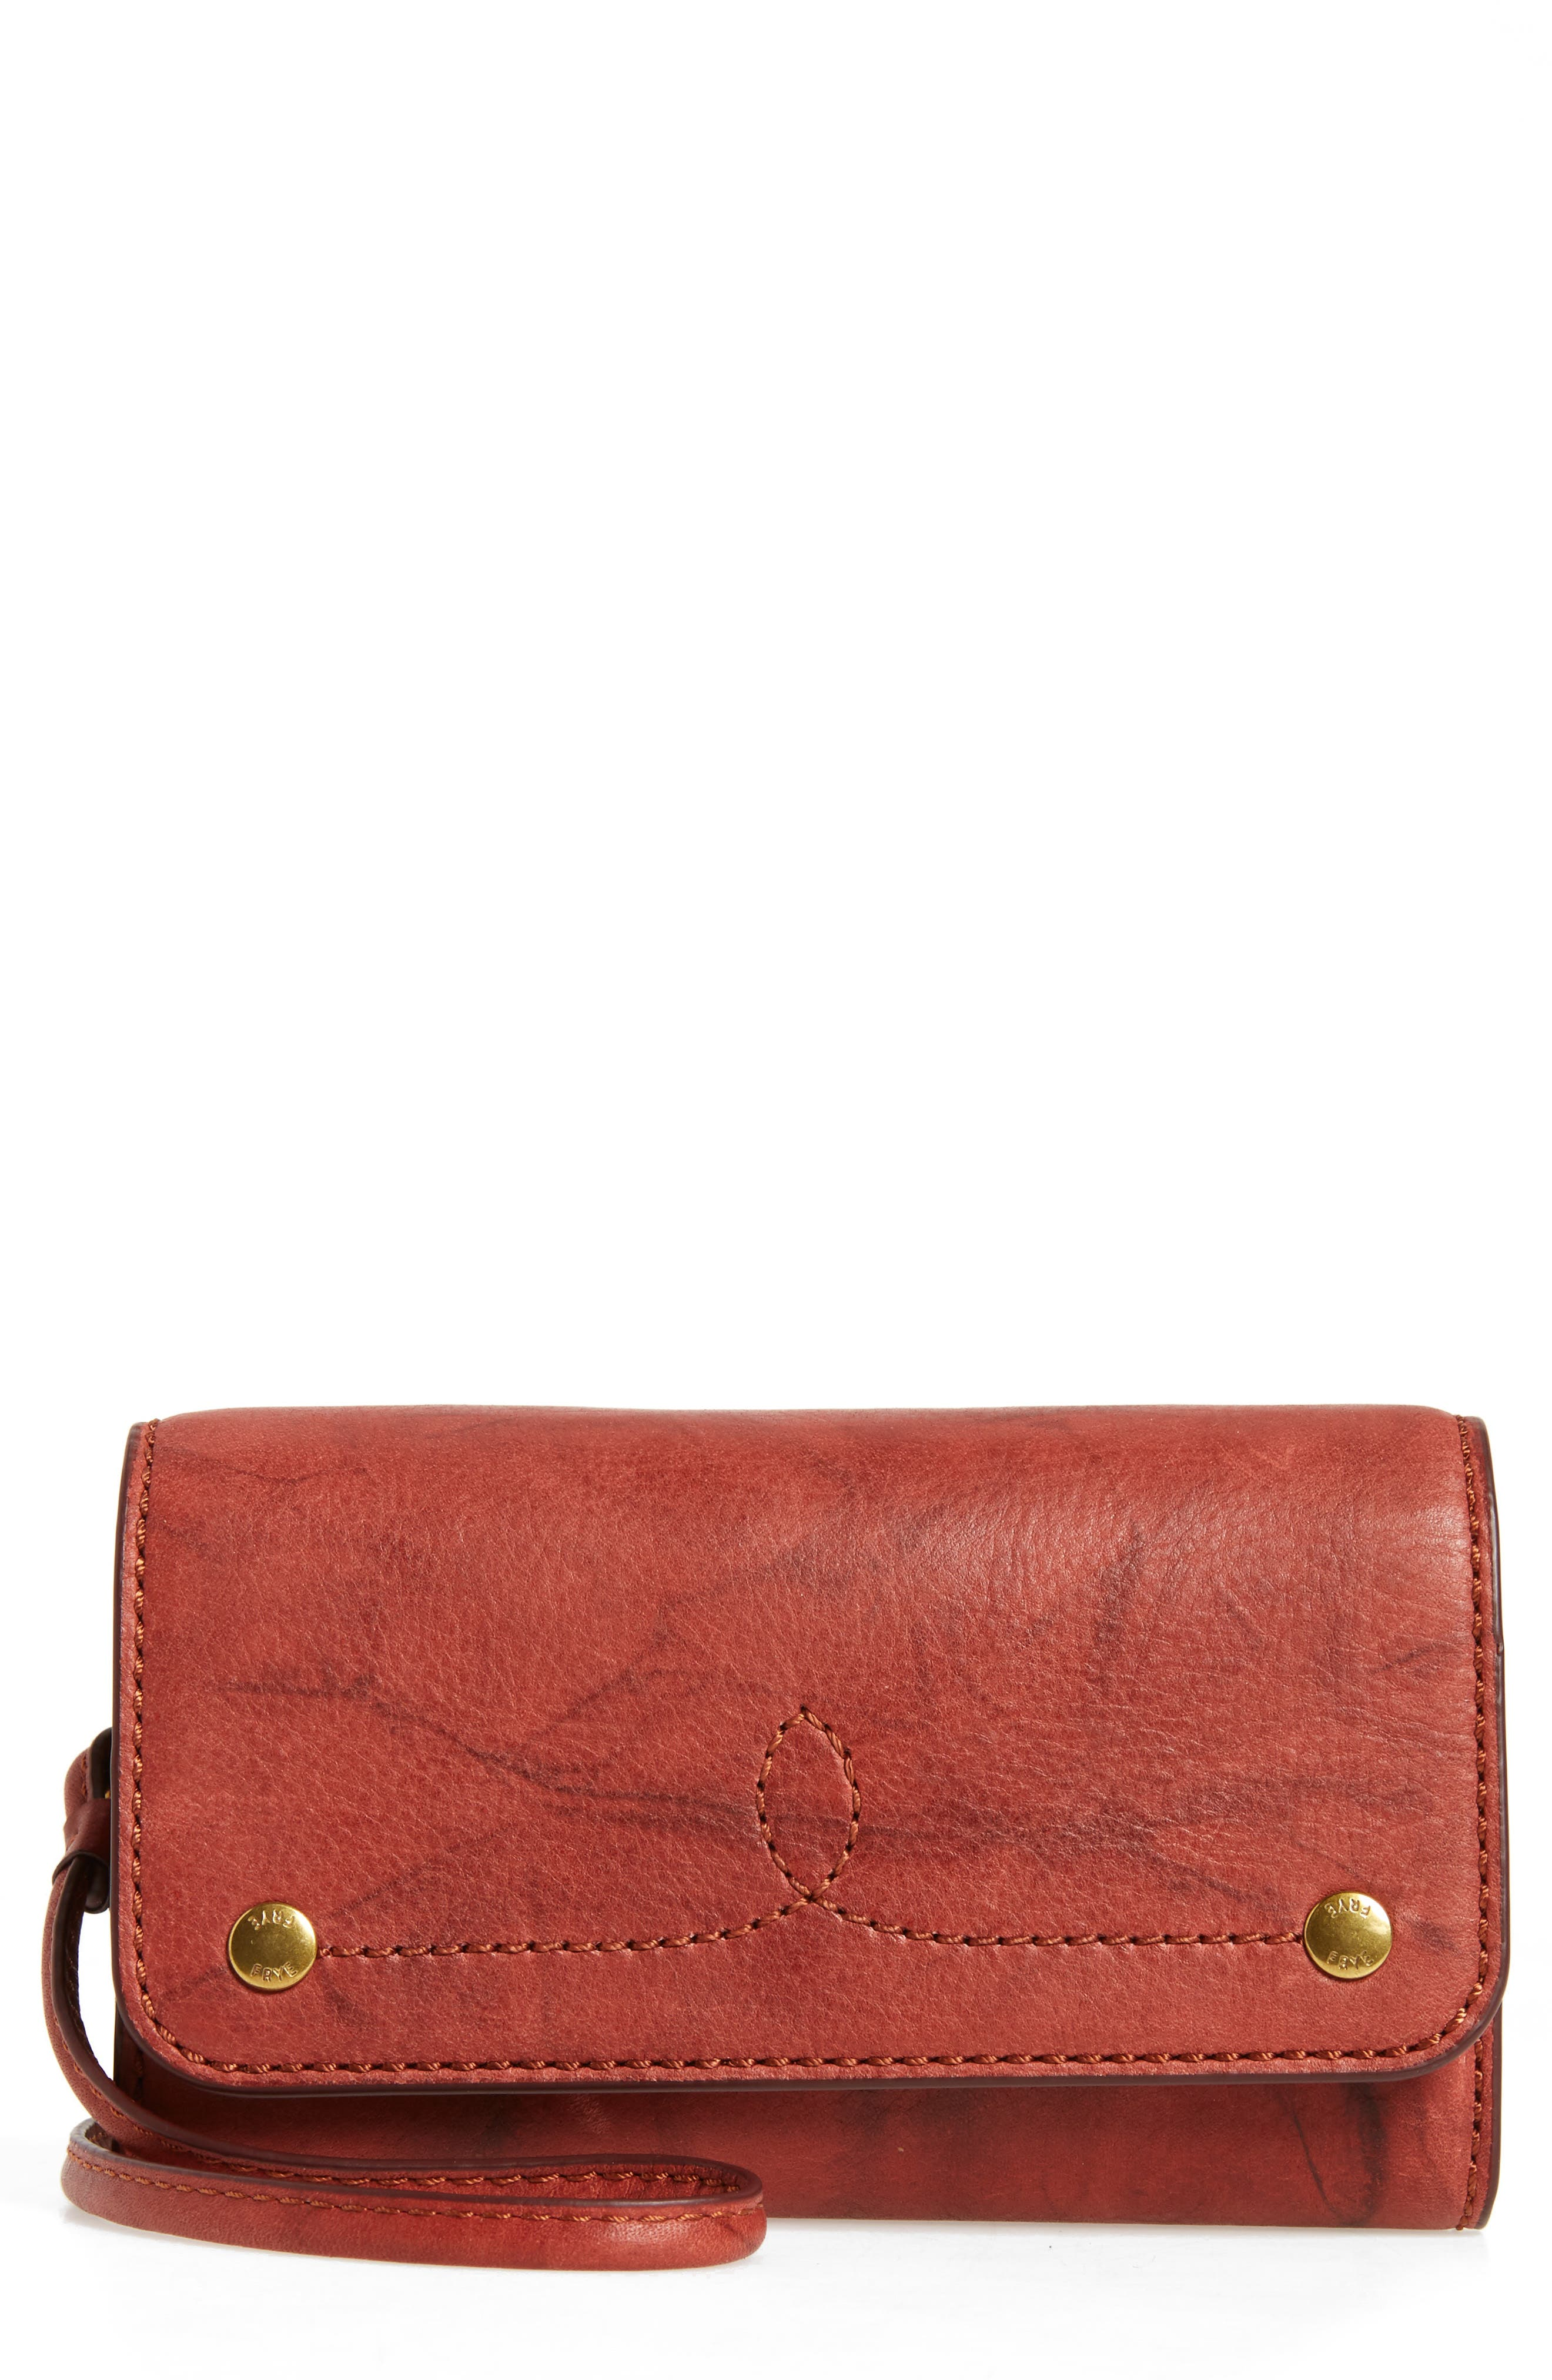 Campus Rivet Leather Smartphone Wallet with Crossbody Strap,                             Main thumbnail 3, color,